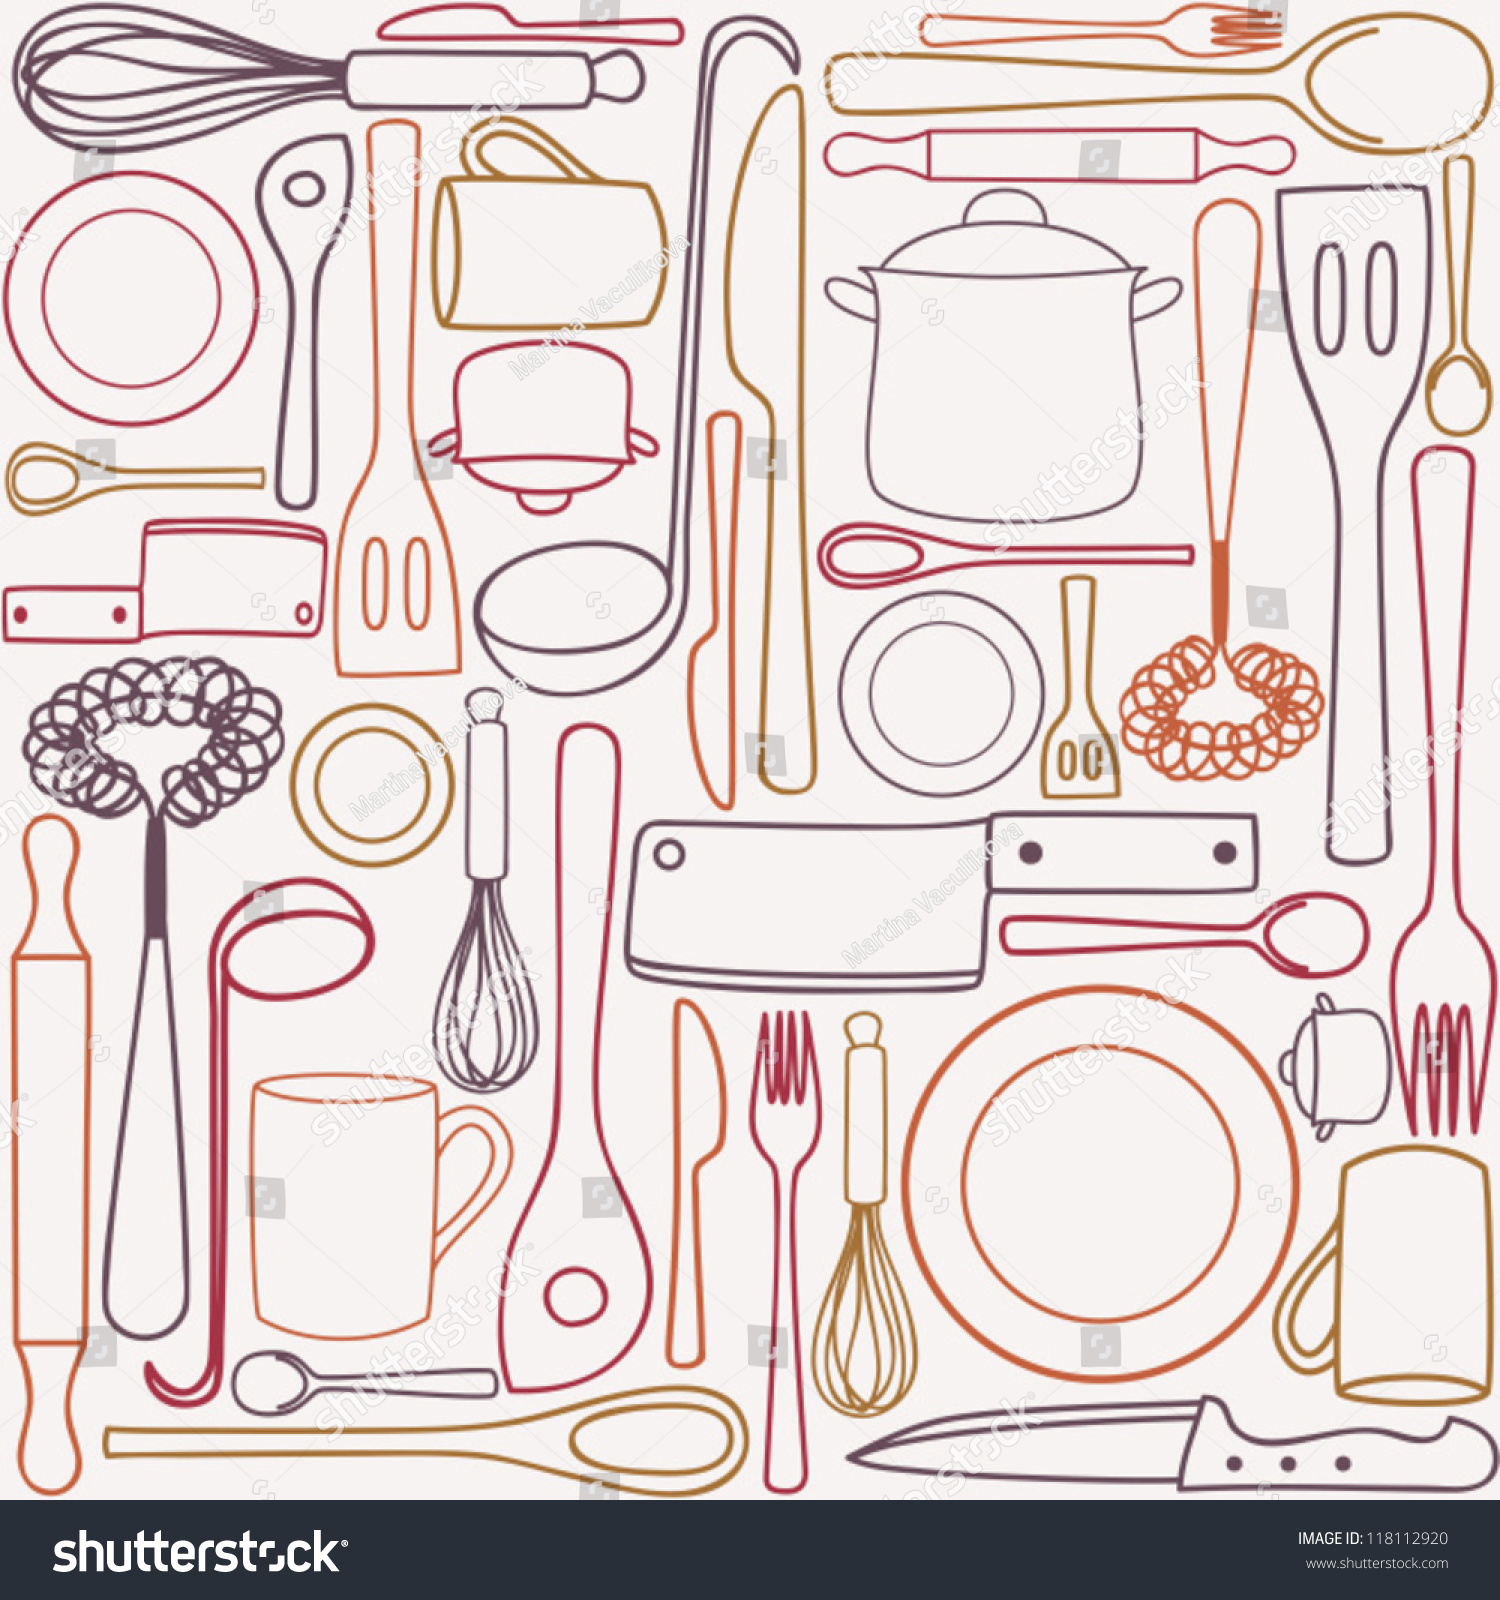 Kitchen Cooking Utensils Cutlery Seamless Pattern Stock